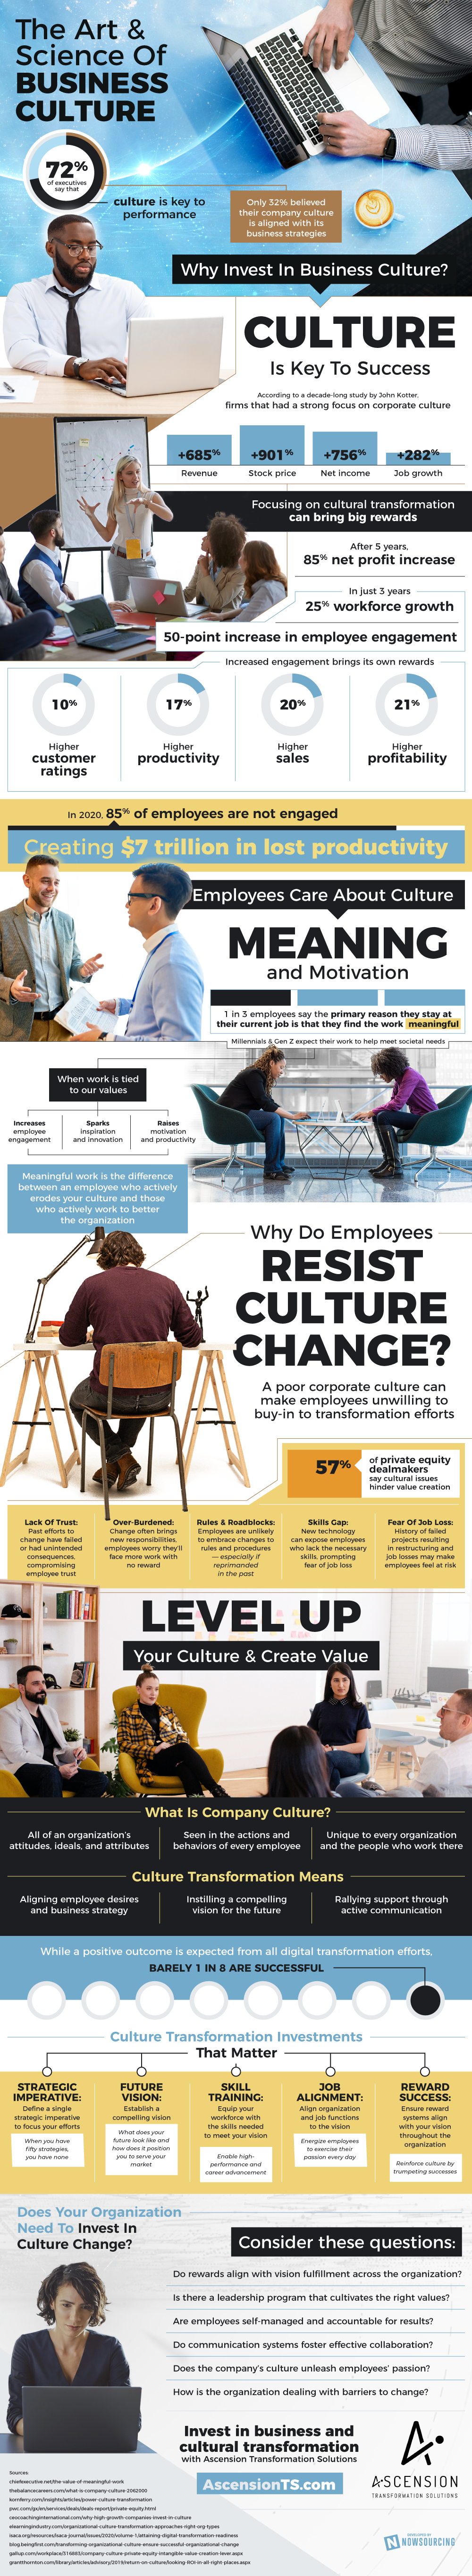 How to Change Your Company Culture [Infographic]